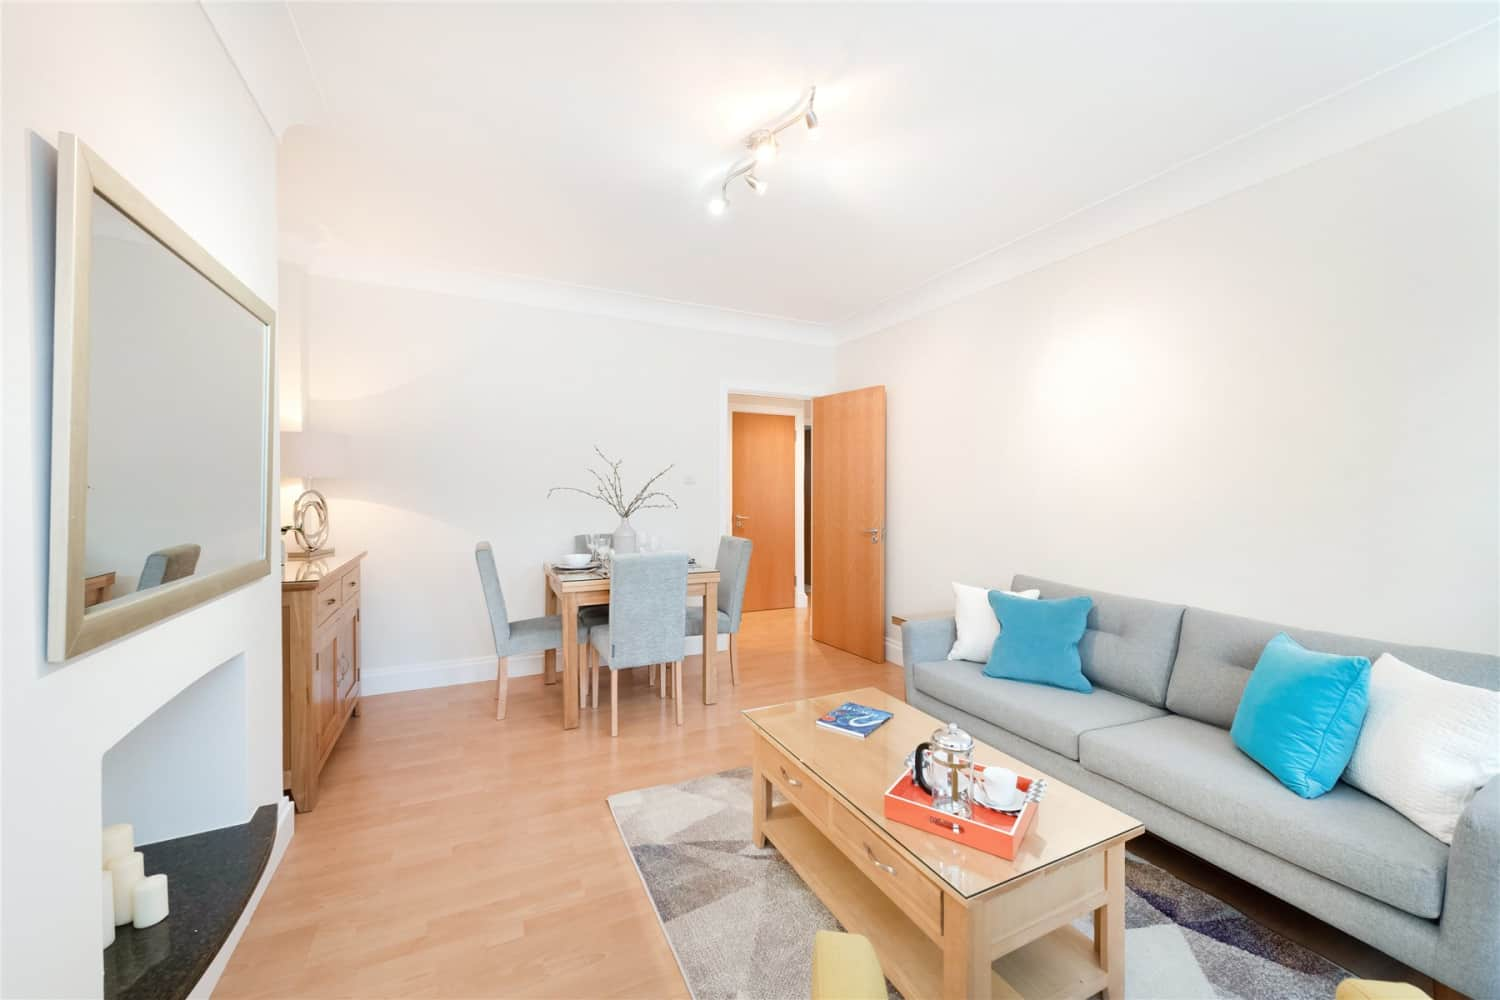 Apartment London, W8 - Stafford Court Kensington High Street London W8 - 05